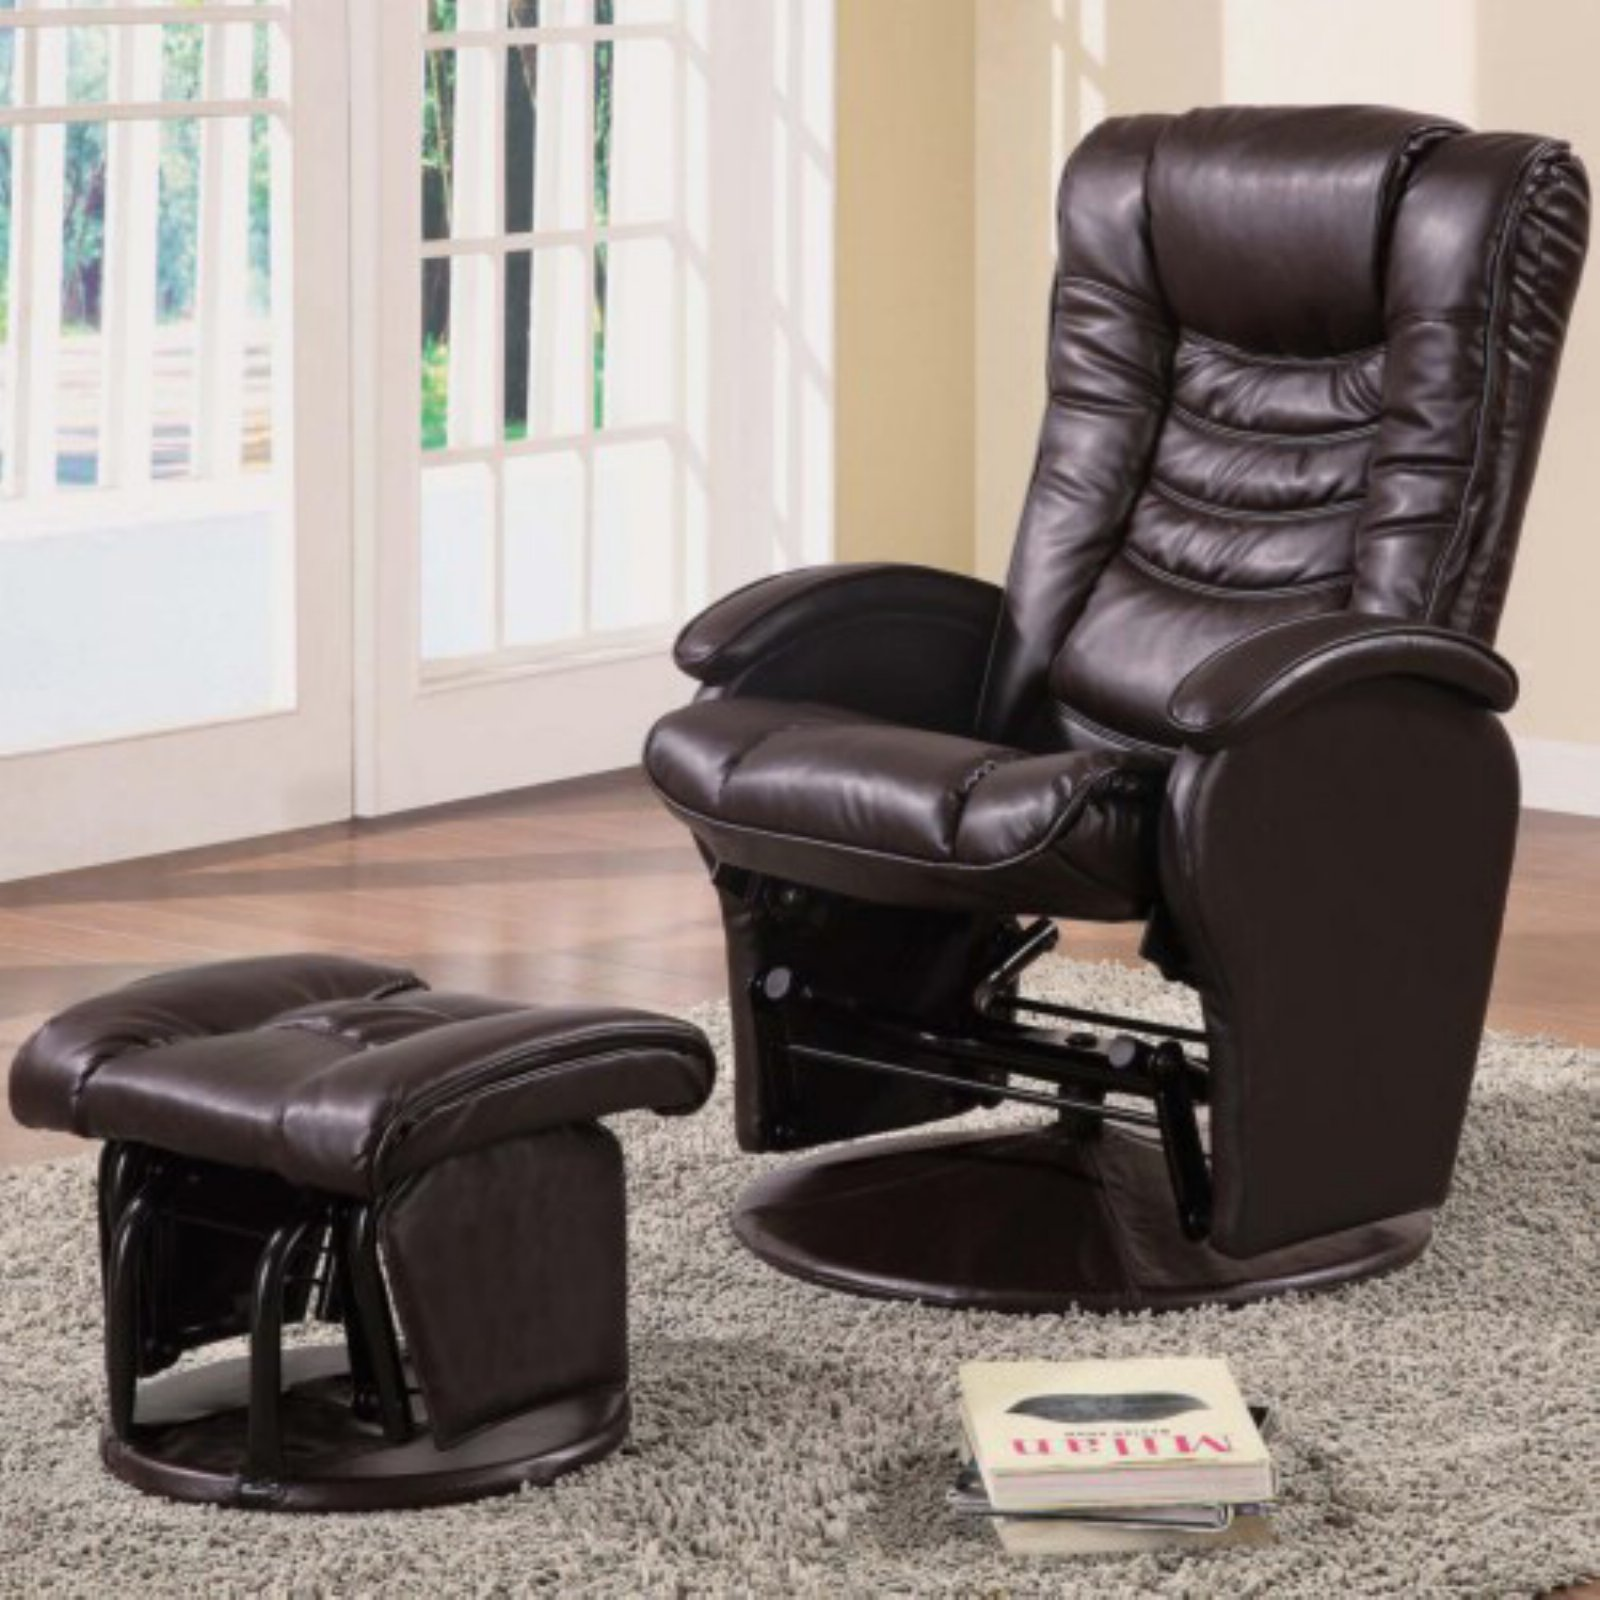 Coaster Ultra-Comfort Glider and Ottoman in Brown by Coaster Company